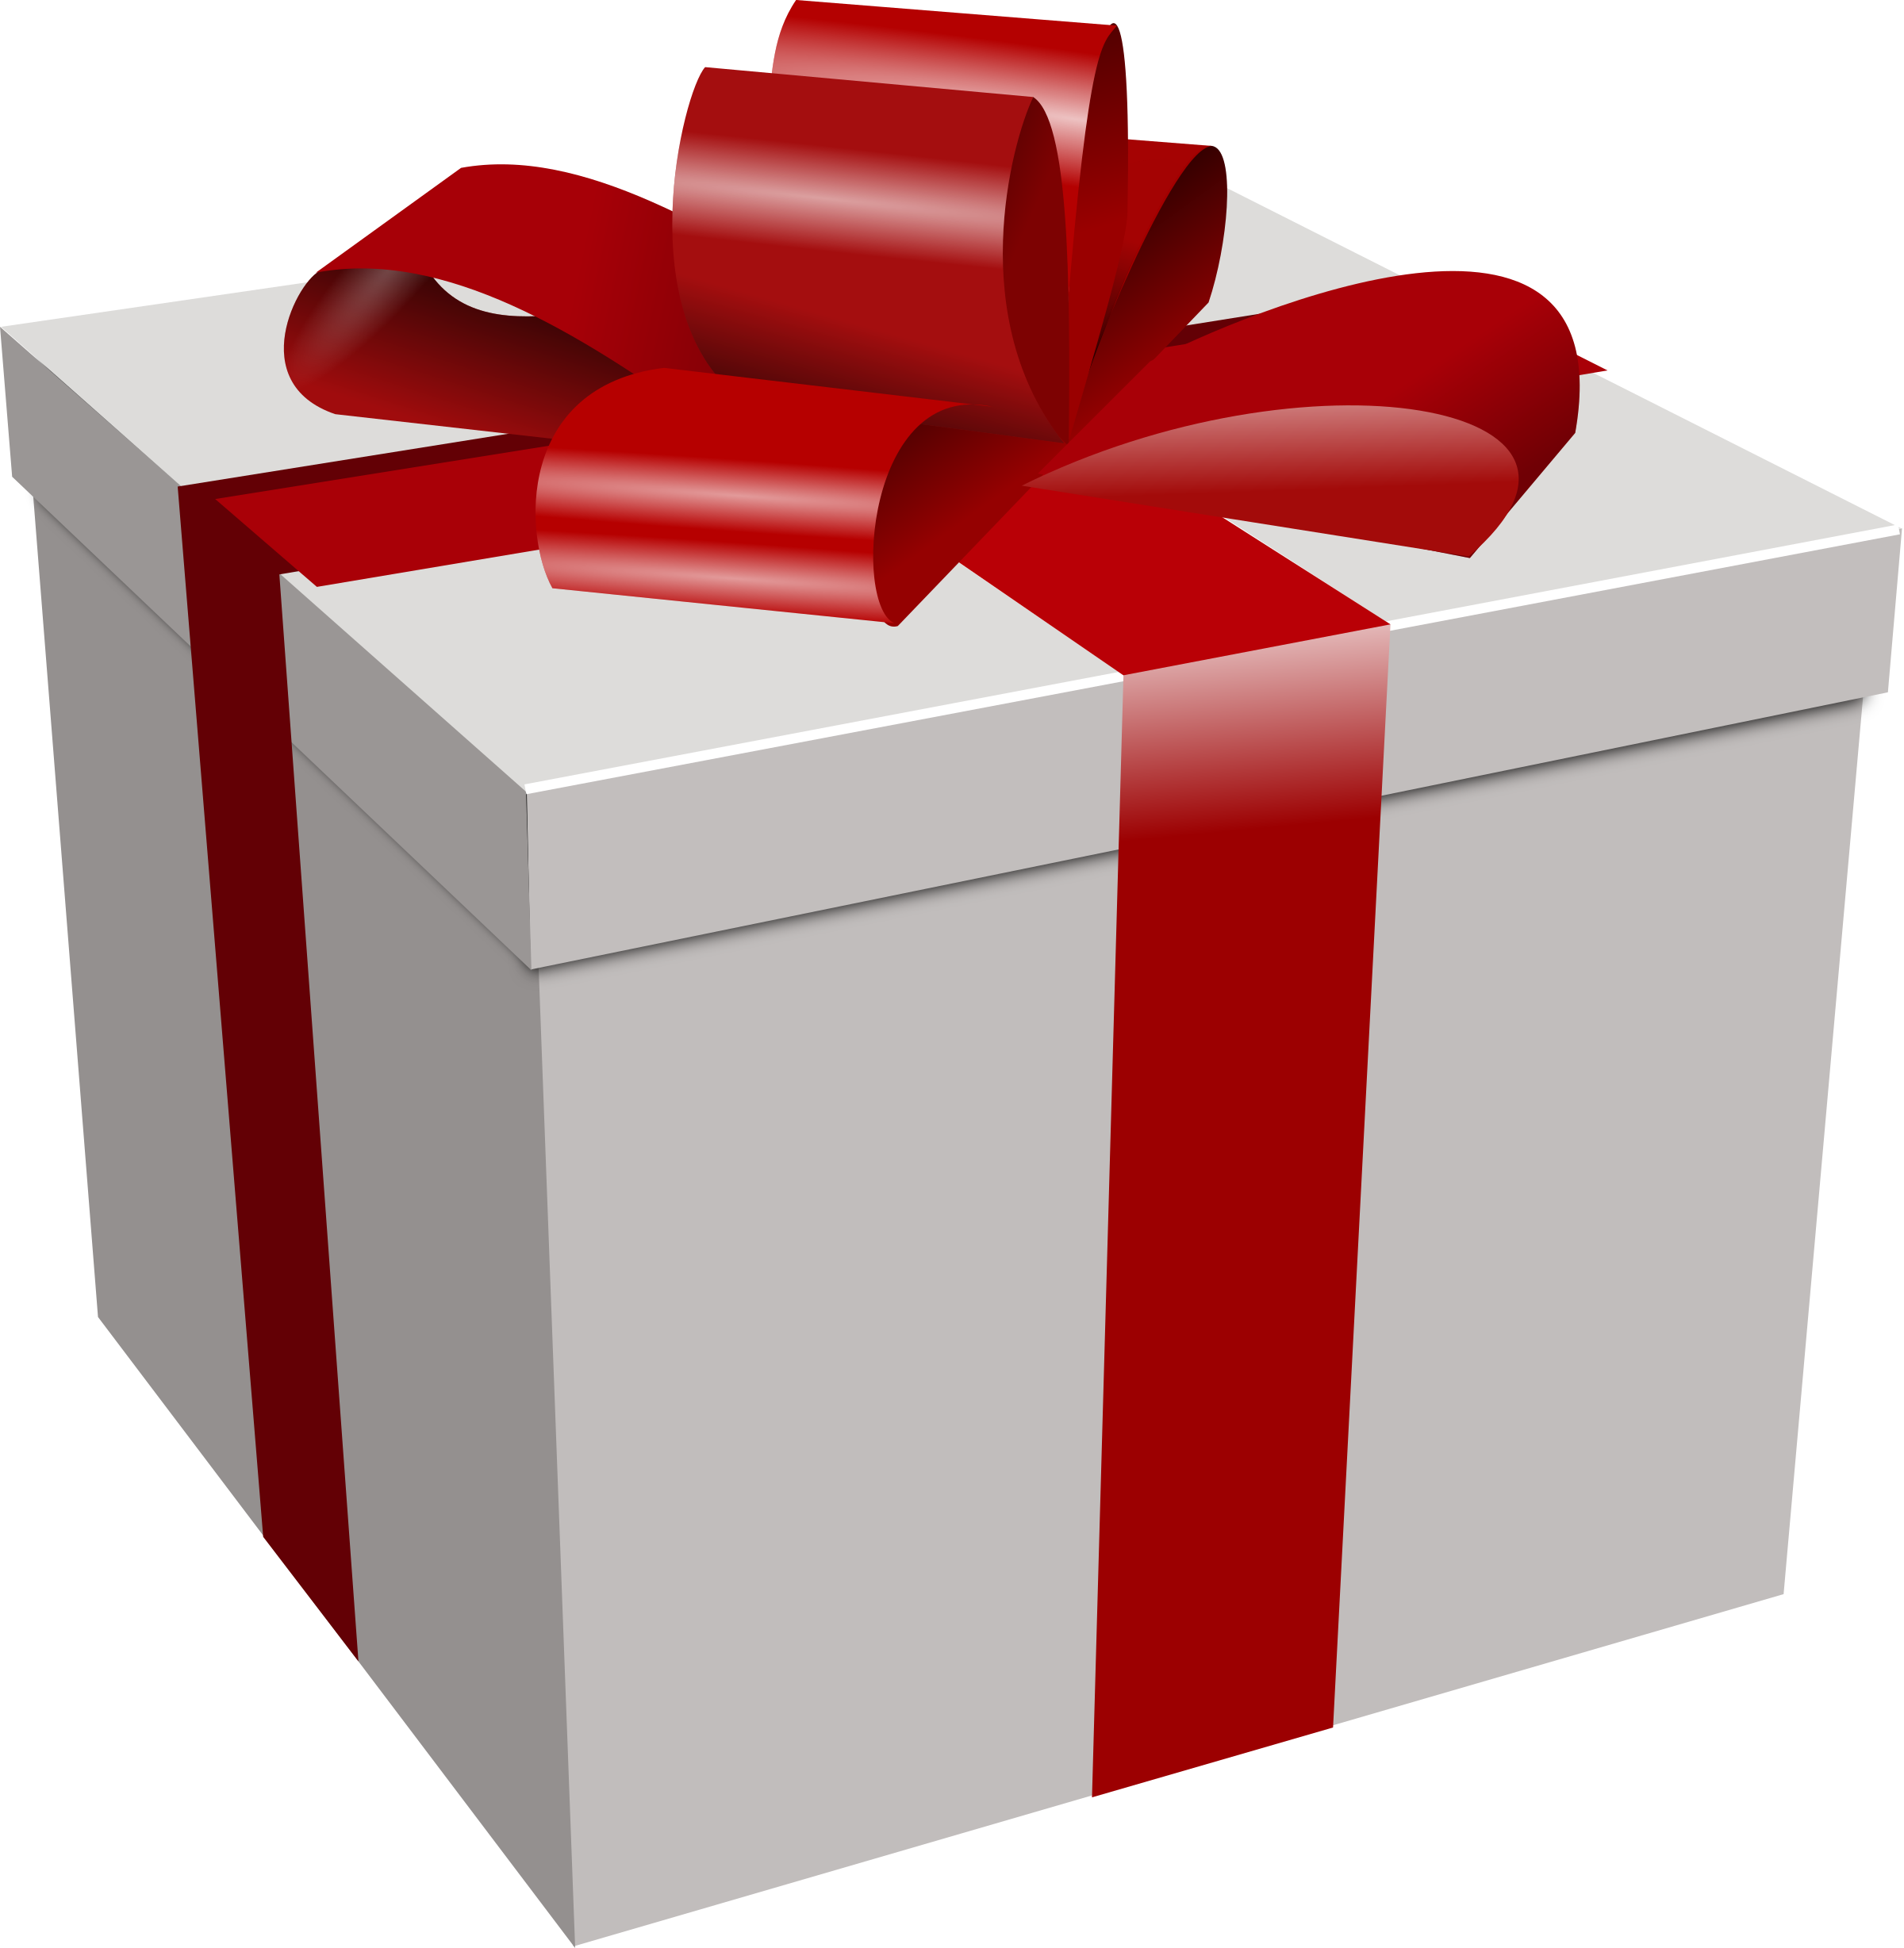 Box big image png. Gift clipart love gift